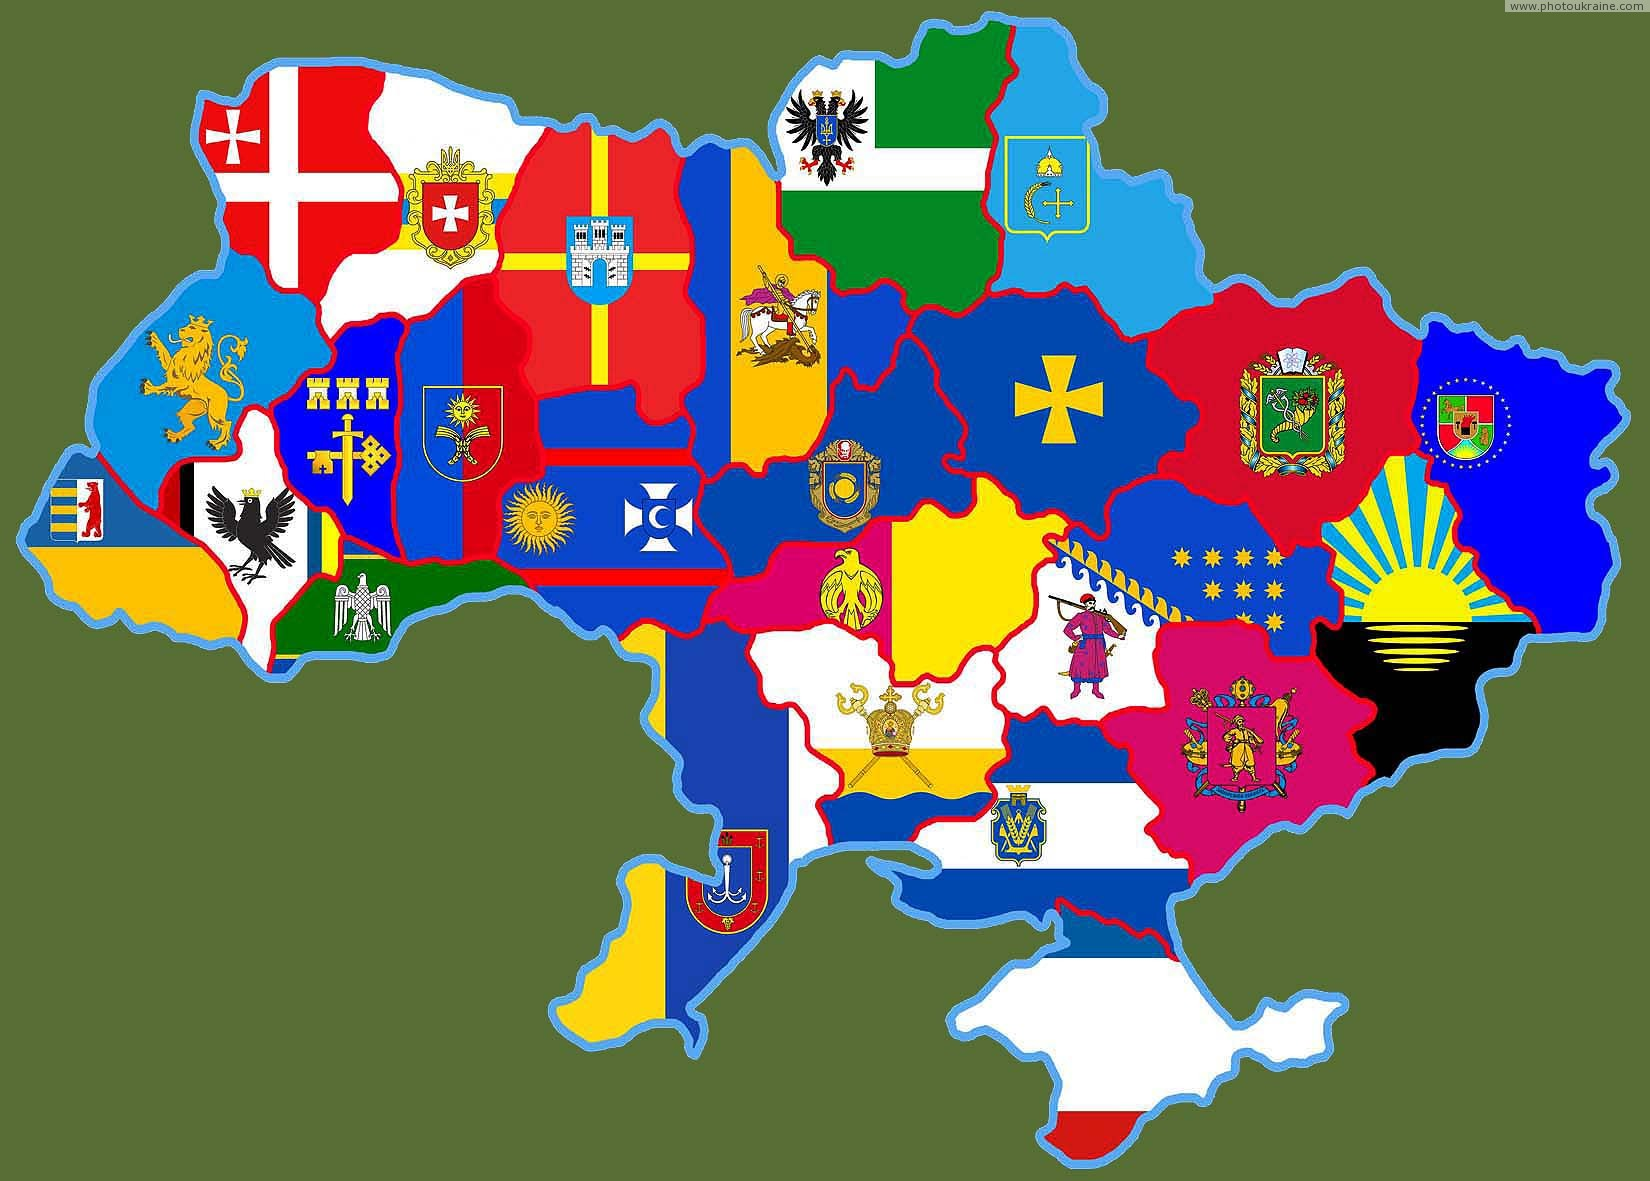 Flags of the administrative regions of Ukraine